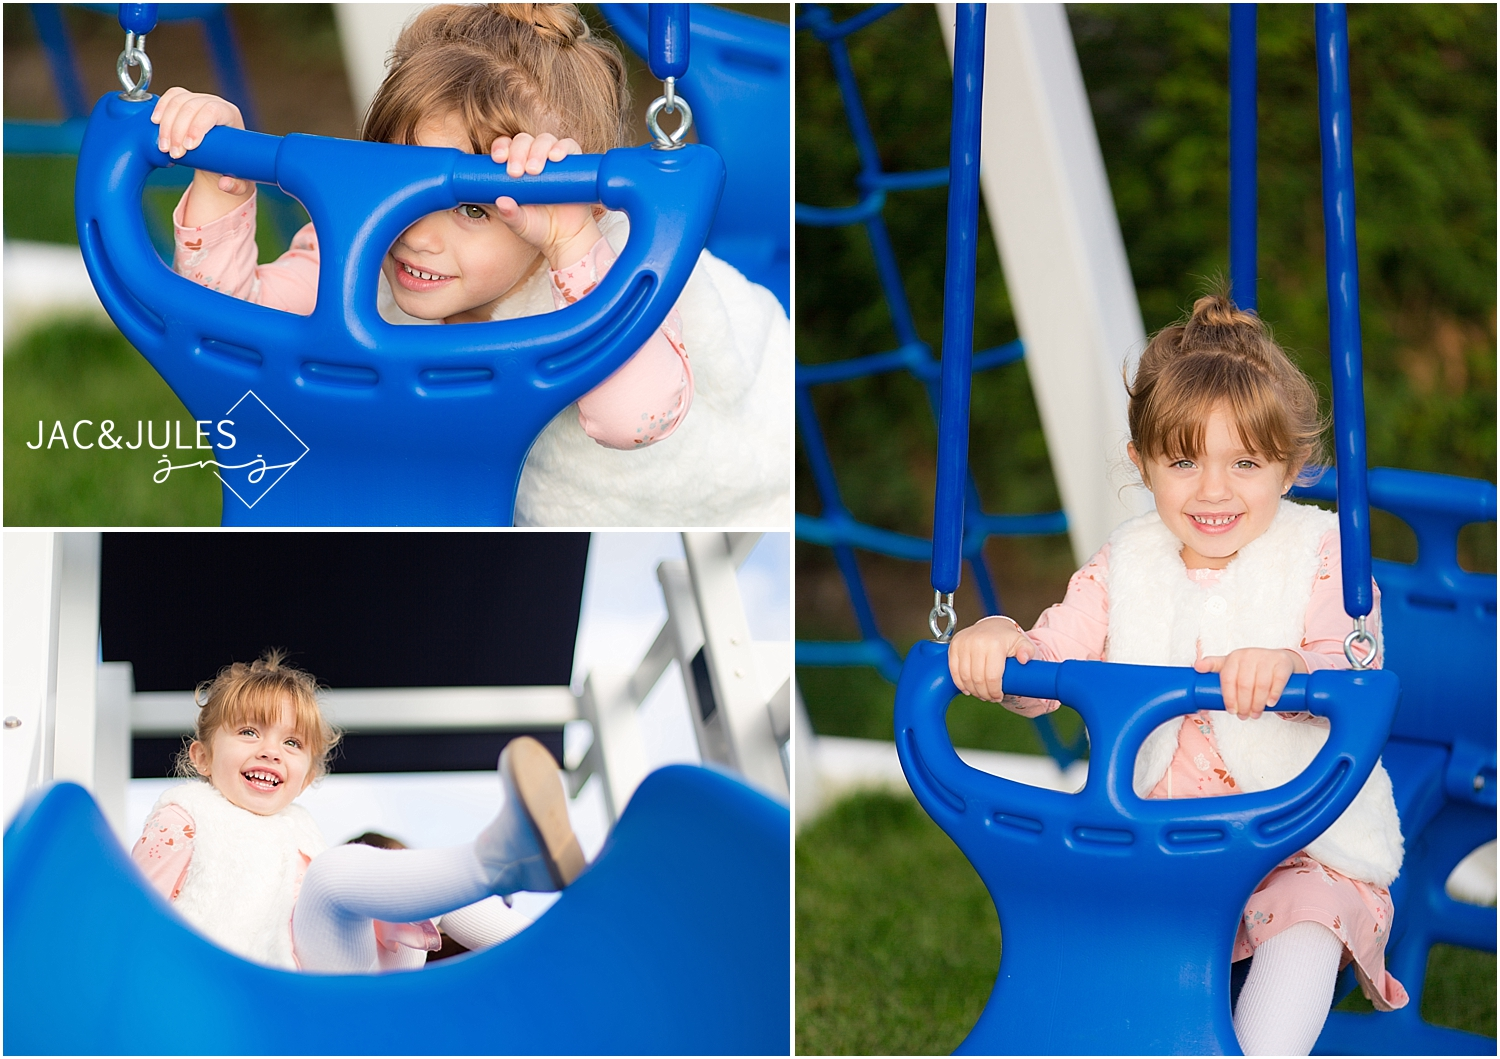 jacnjules photograph a girl on the swings at their home in Toms River, NJ